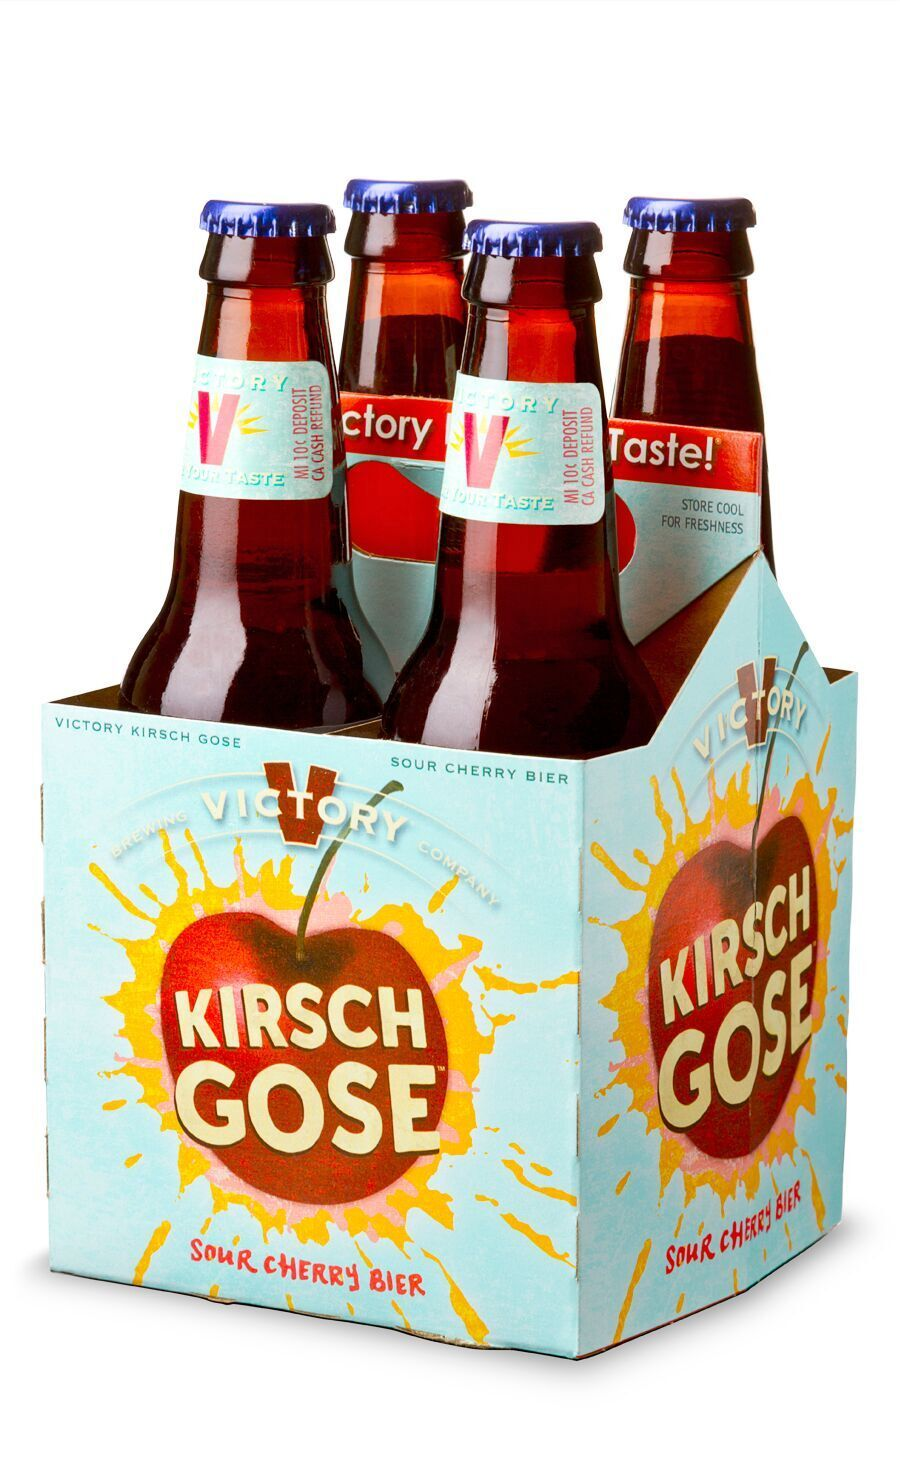 Victory Brewing S Kirsch Gose And Sour Monkey Make Return Craftbeer Beer Http Hopsaboutbeer Com Victory Brewing Brewing Co Sour Cherry